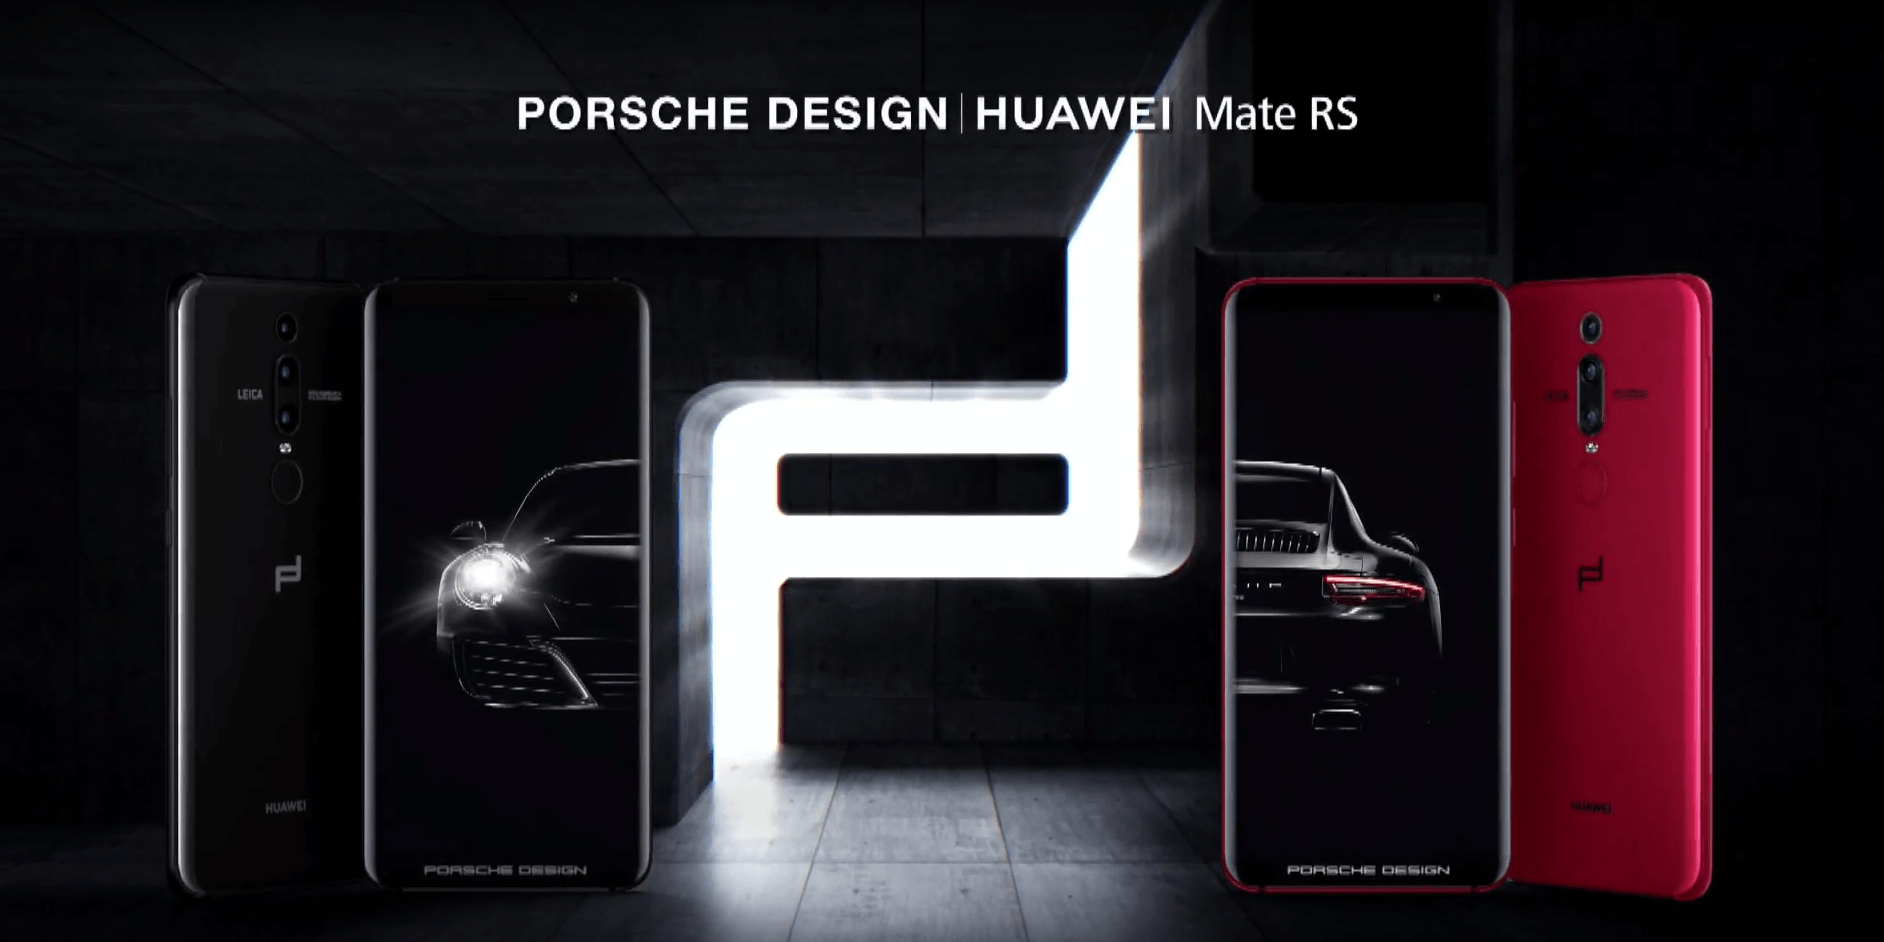 porsche design mate rs huawei challenges the competition. Black Bedroom Furniture Sets. Home Design Ideas